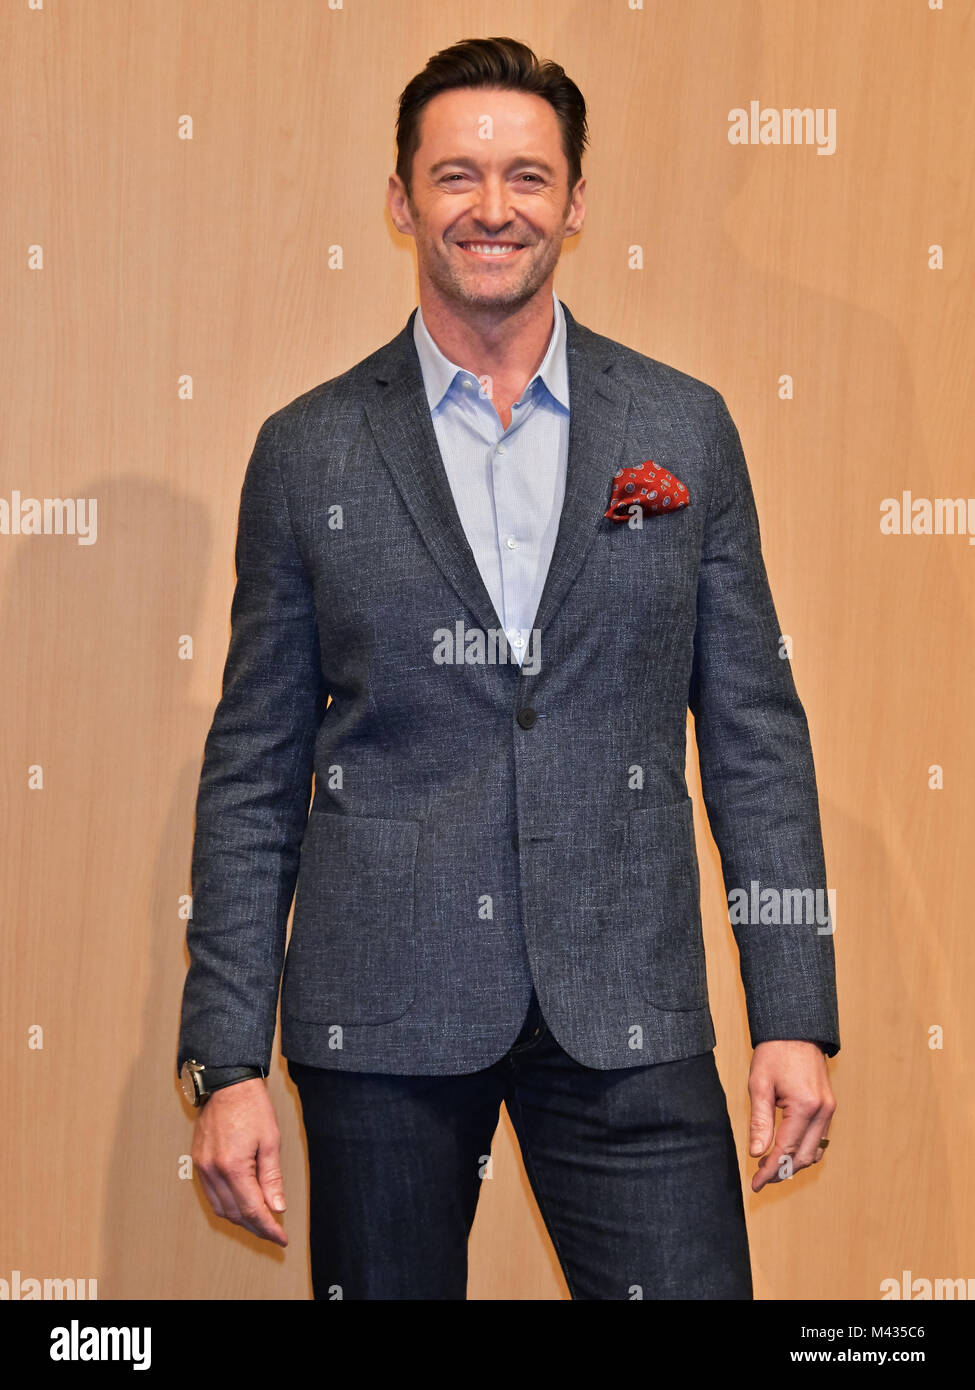 Tokyo, Japan. 14th February, 2018. Hugh Jackman, February 14, 2018, Tokyo, Japan : Actor Hugh Jackman attends the - Stock Image